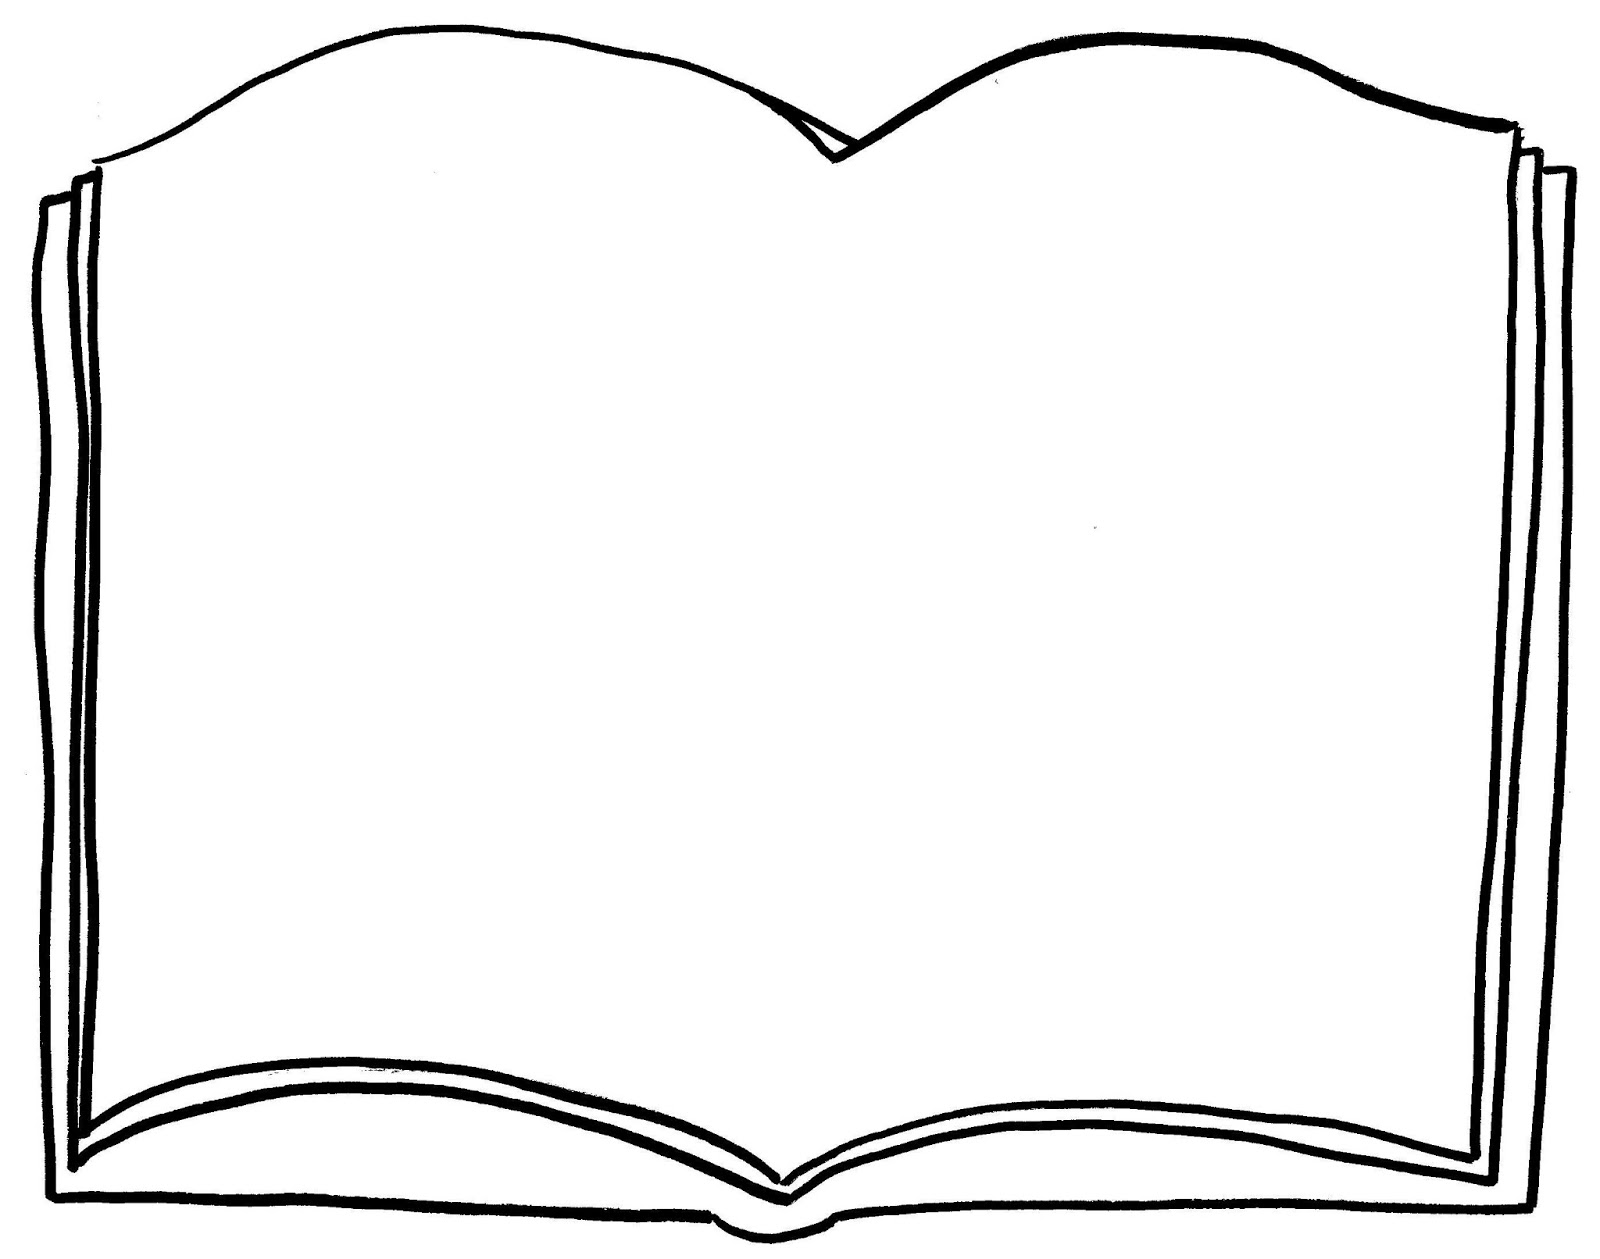 Open books coloring pages ~ Children's Liturgy: Jan 27, 2013 3rd Sunday Ordinary Time ...